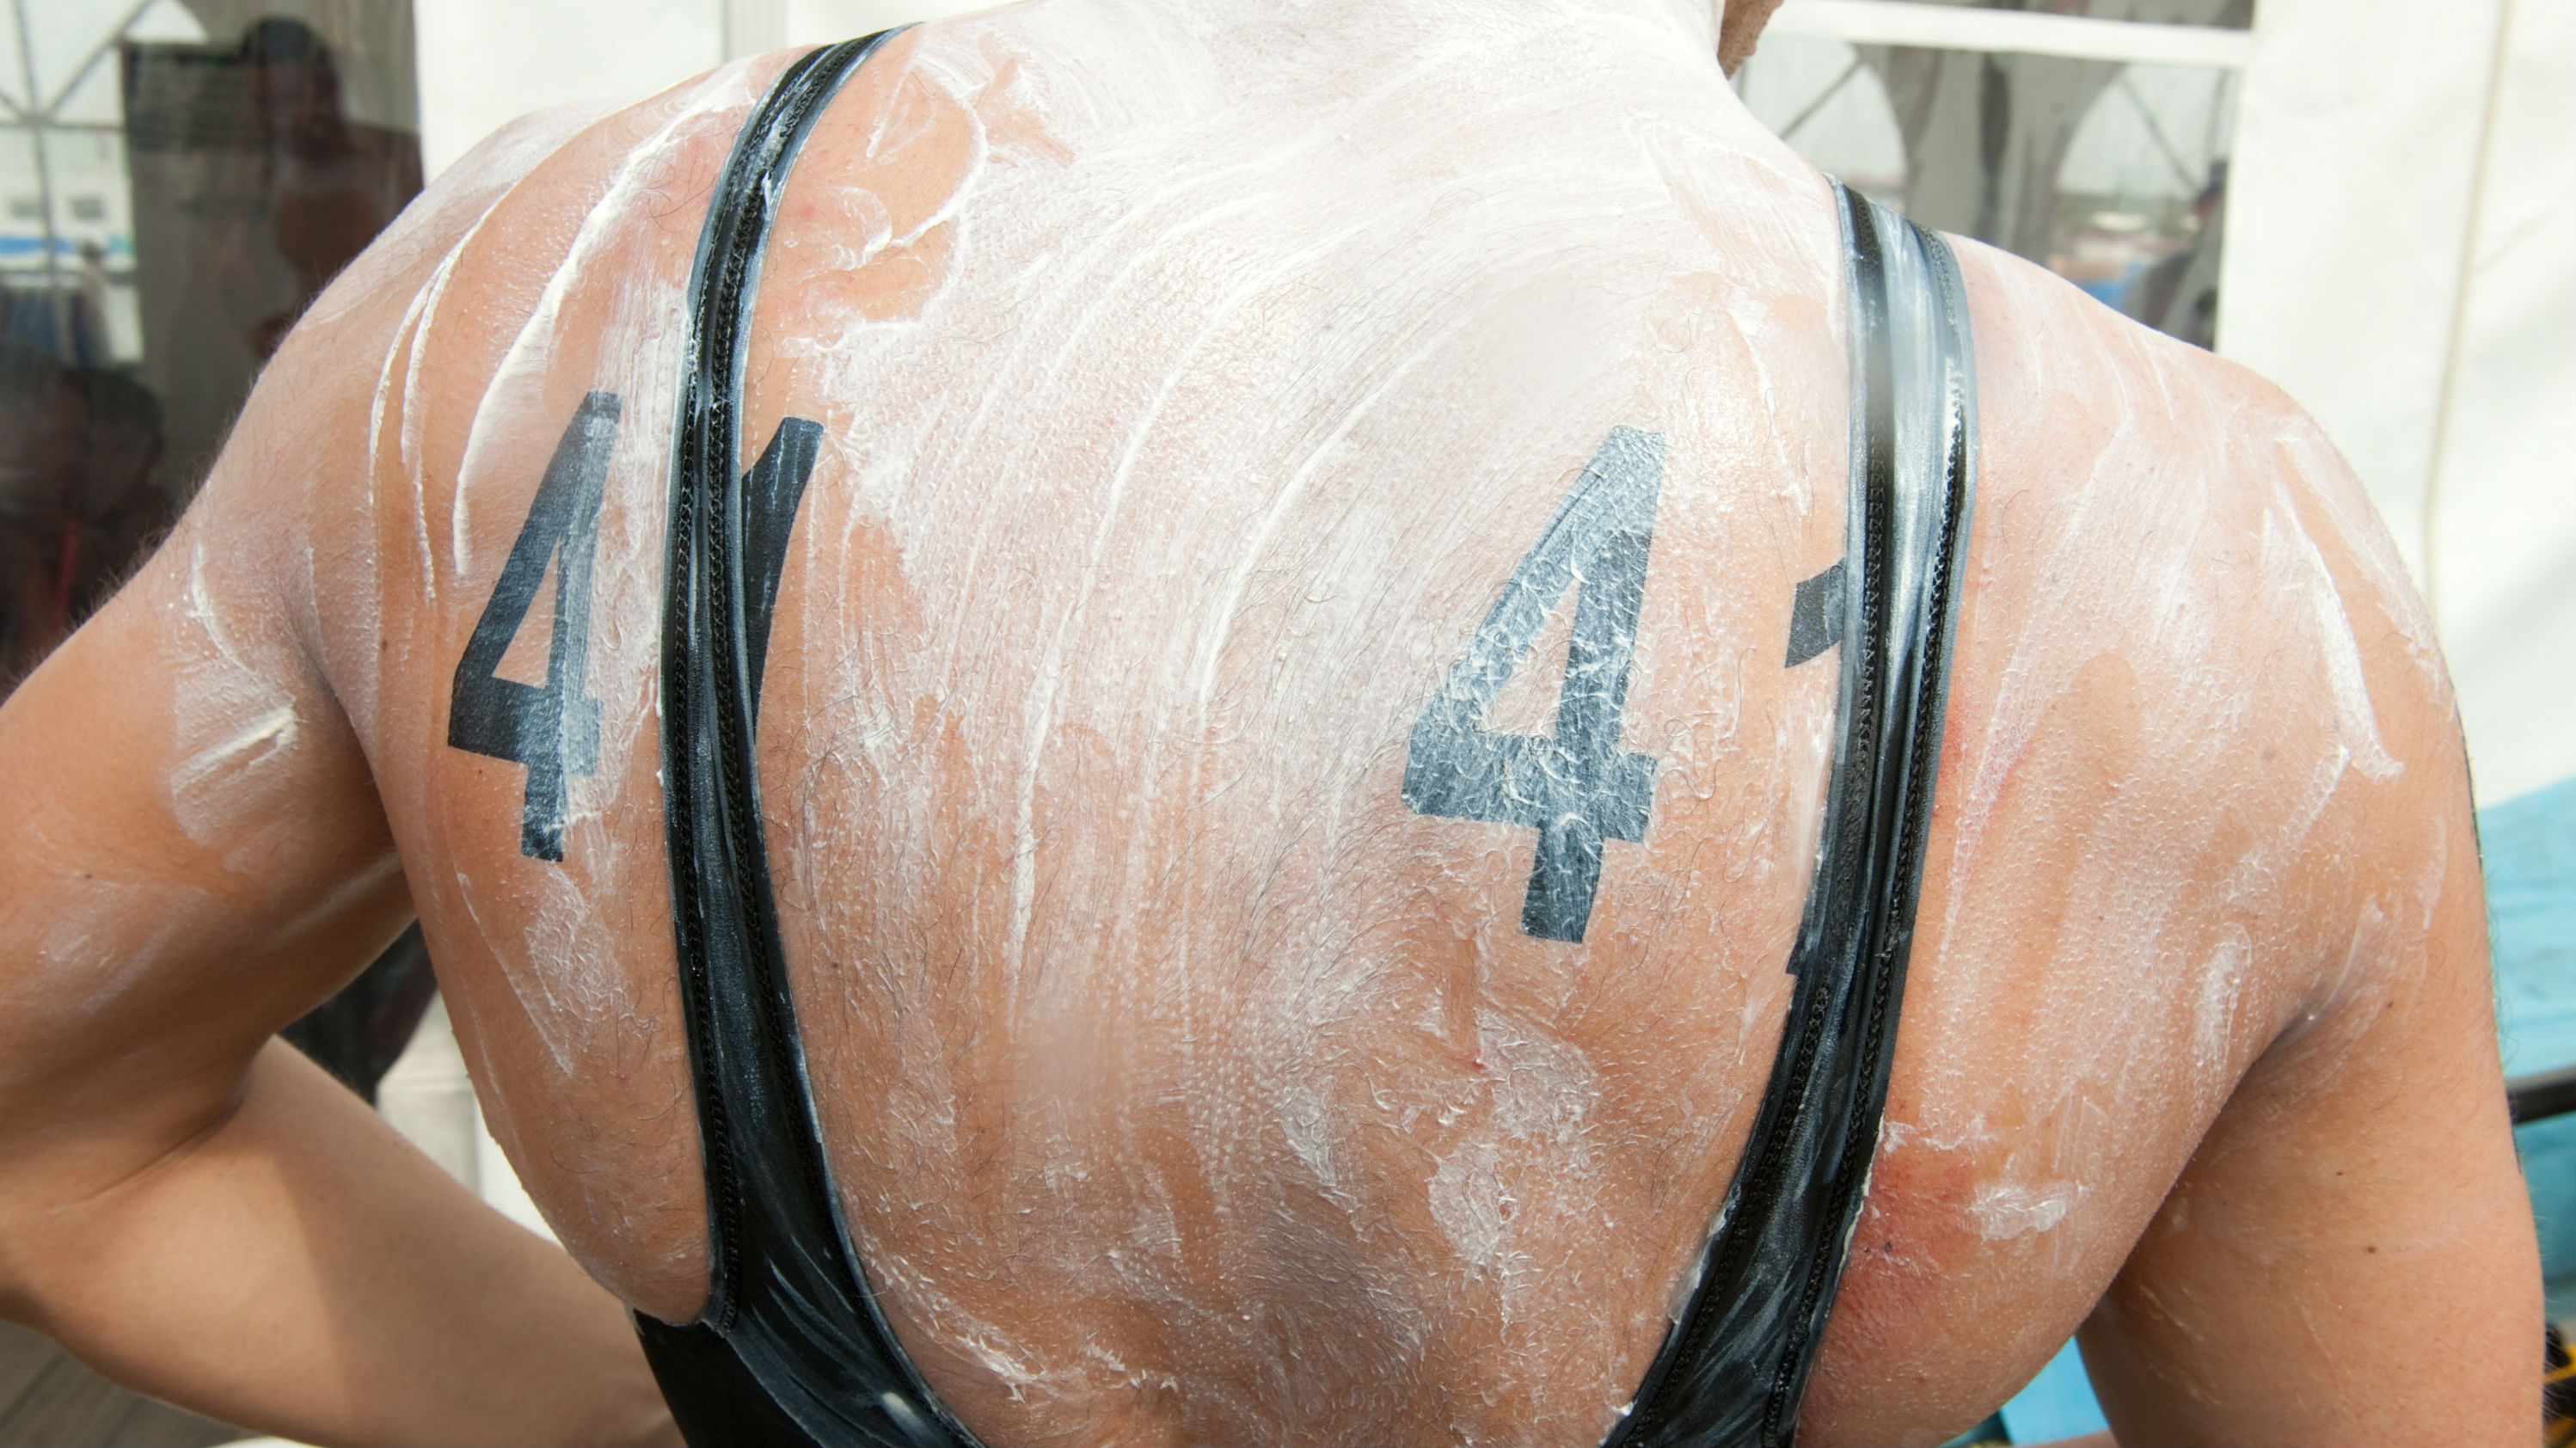 A triathlete's back covered in white sunscreen.